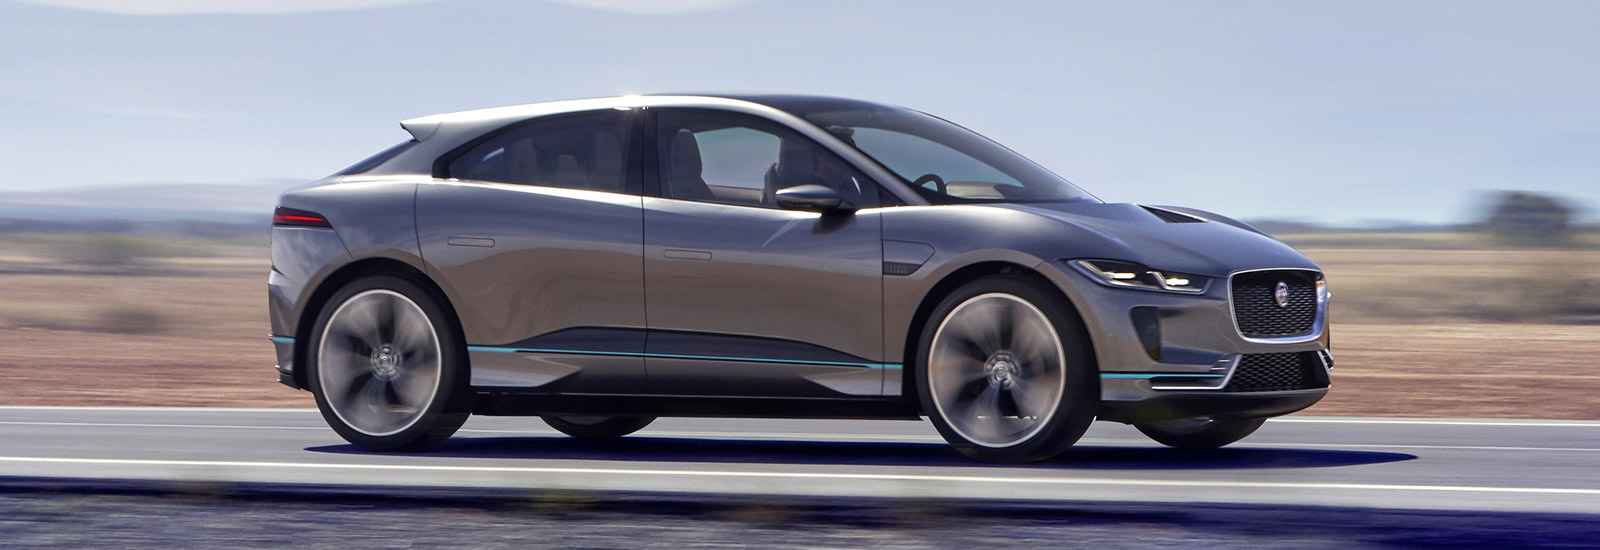 2018 jaguar concept. perfect jaguar jaguar hopes this new car will compete in the performance crossover class  offering a cleaner u2013 but potentially faster alternative to porsche macan to 2018 jaguar concept h